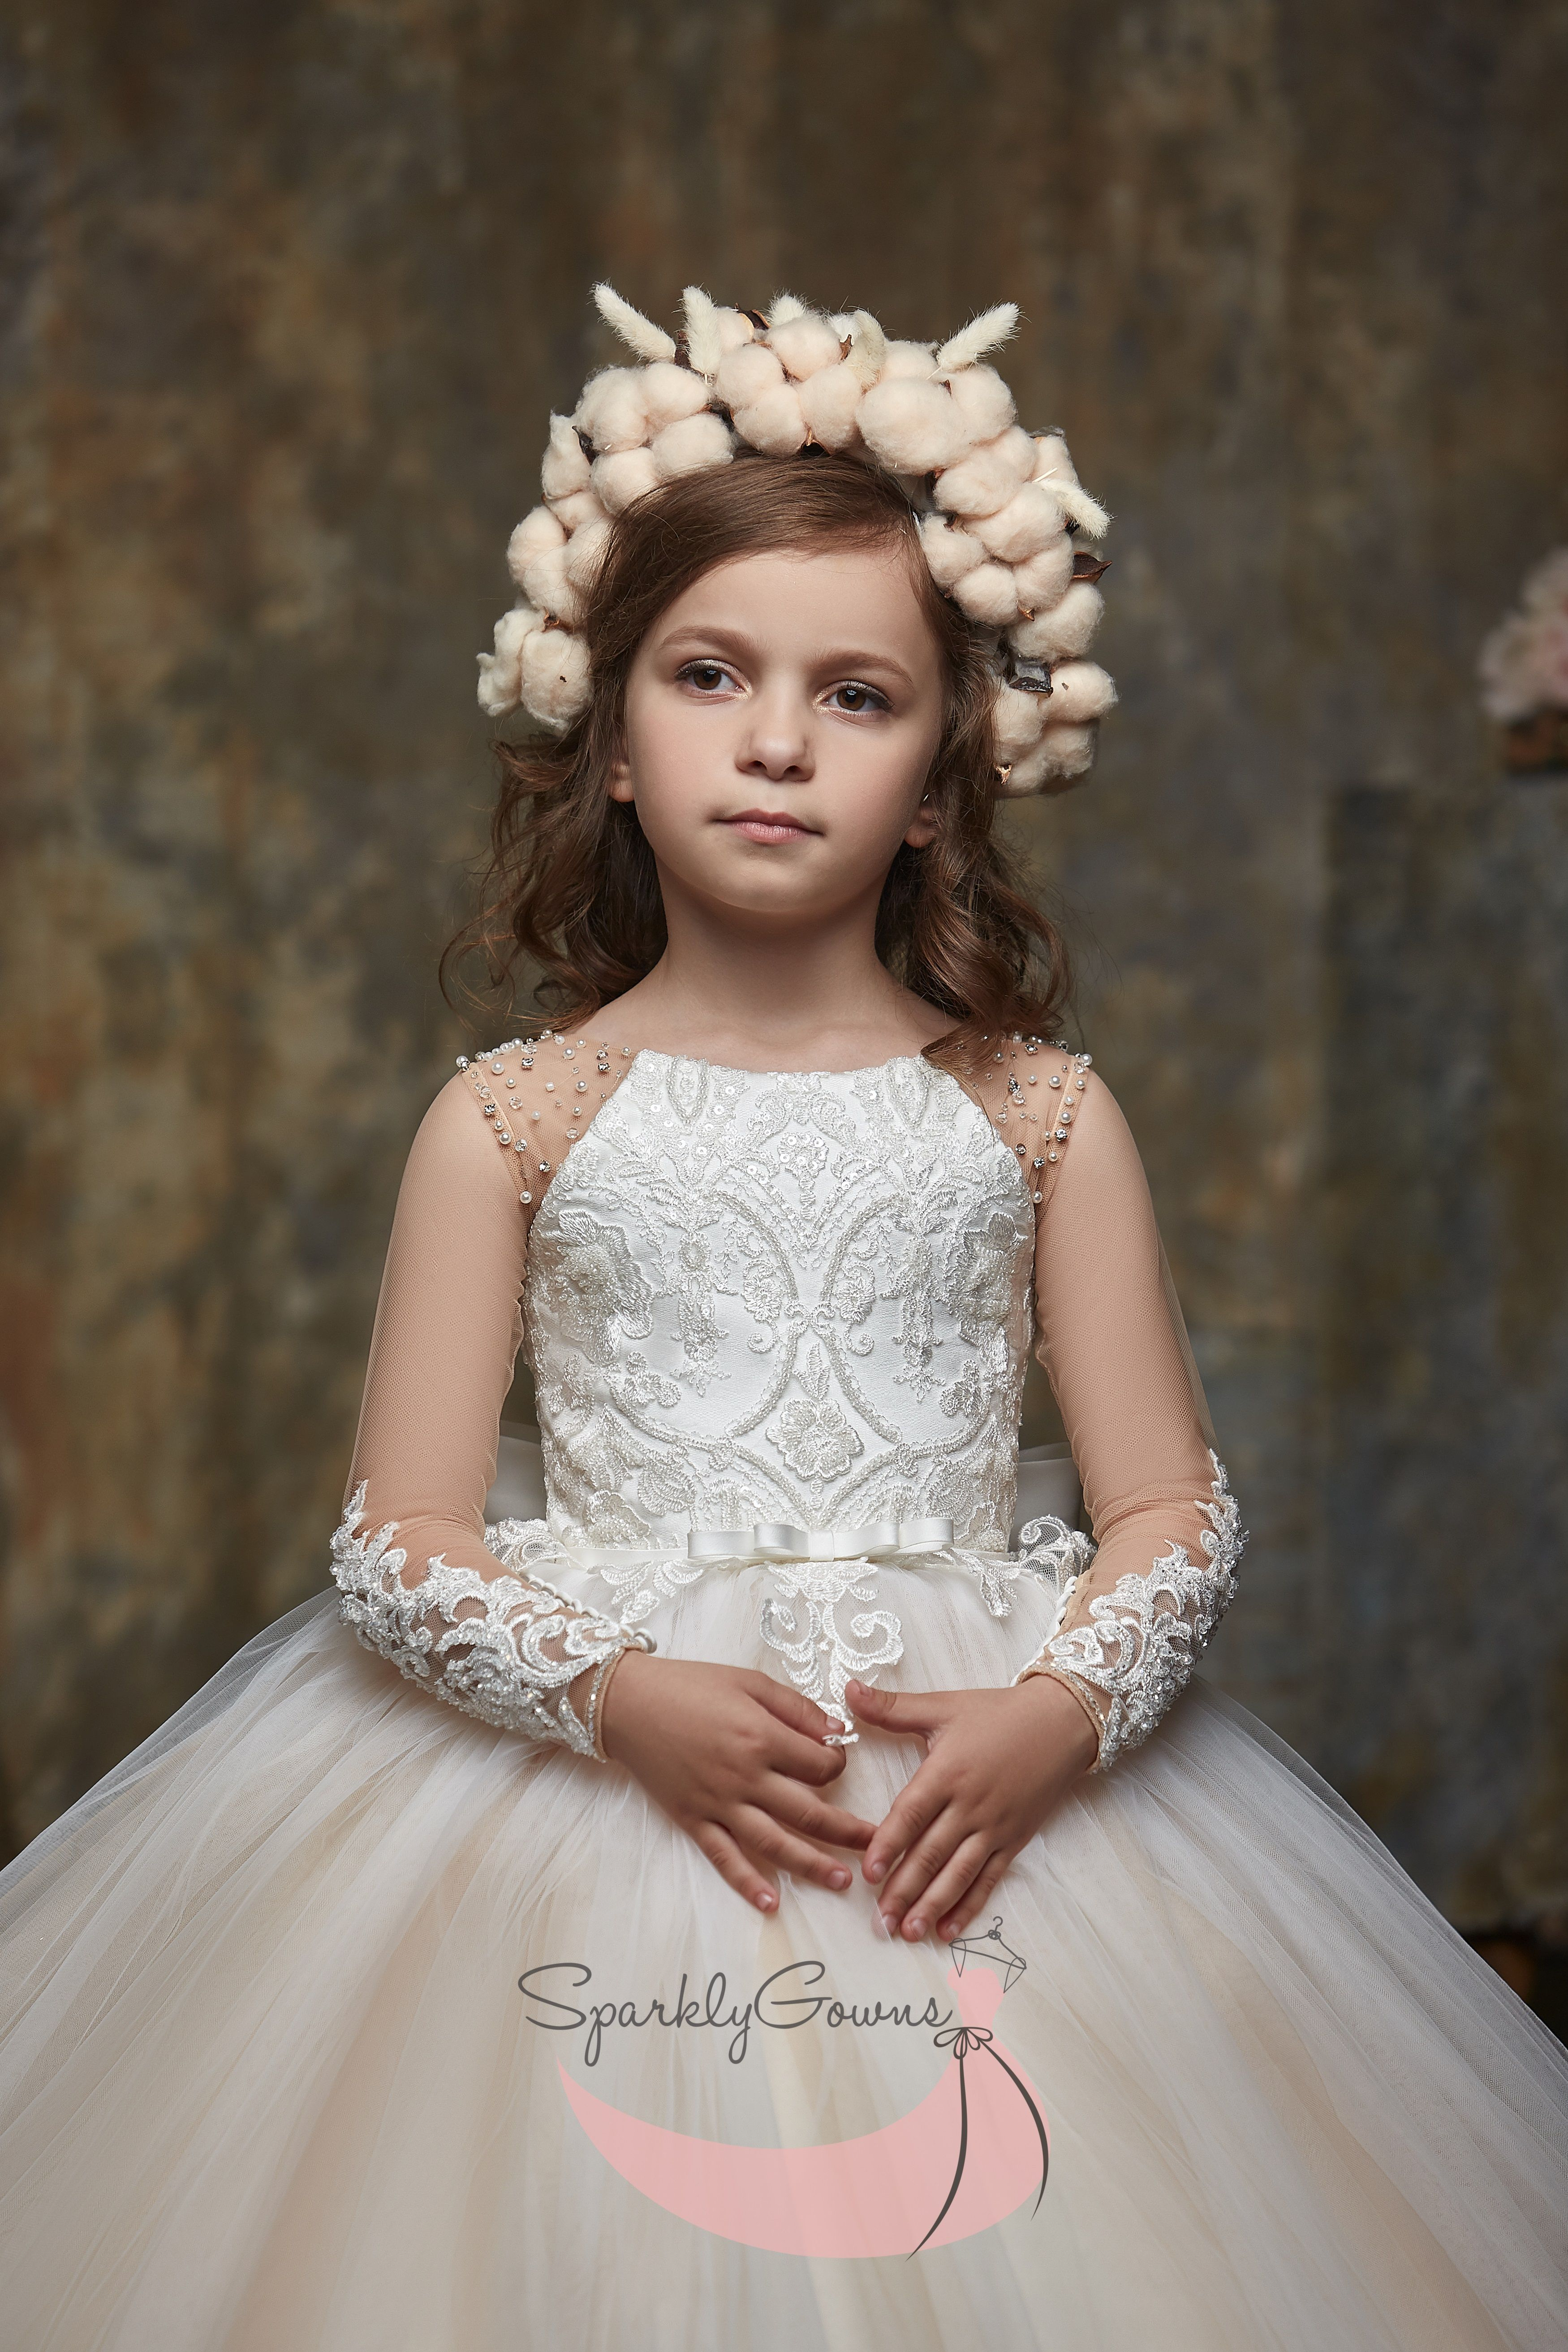 Illusion Long Sleeves First Communion Flower Girl Dress 3004 Illusion Long Sleeves First Communion Flower Girl Dress 3004 Cute Flower Girl Dresses Flower Girl Dresses First Communion Dresses [ 5250 x 3500 Pixel ]